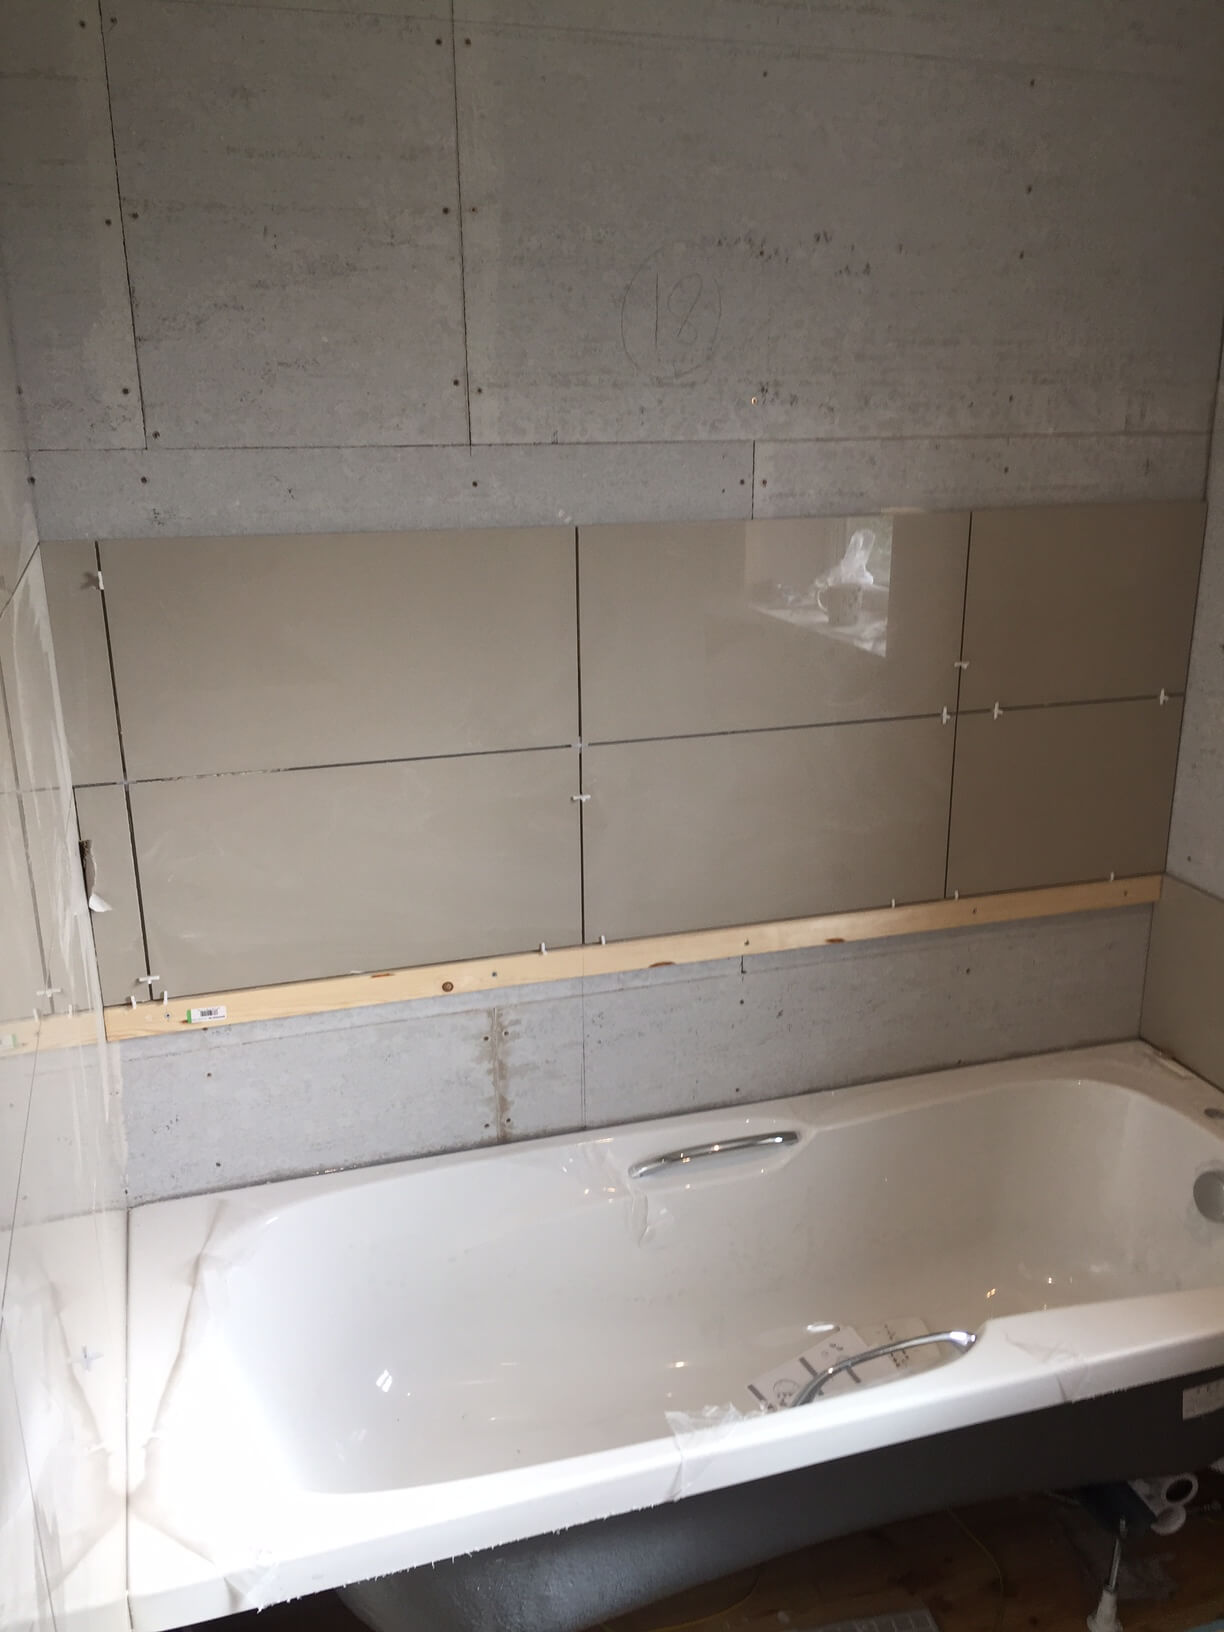 Starting To Tile Over the Bath